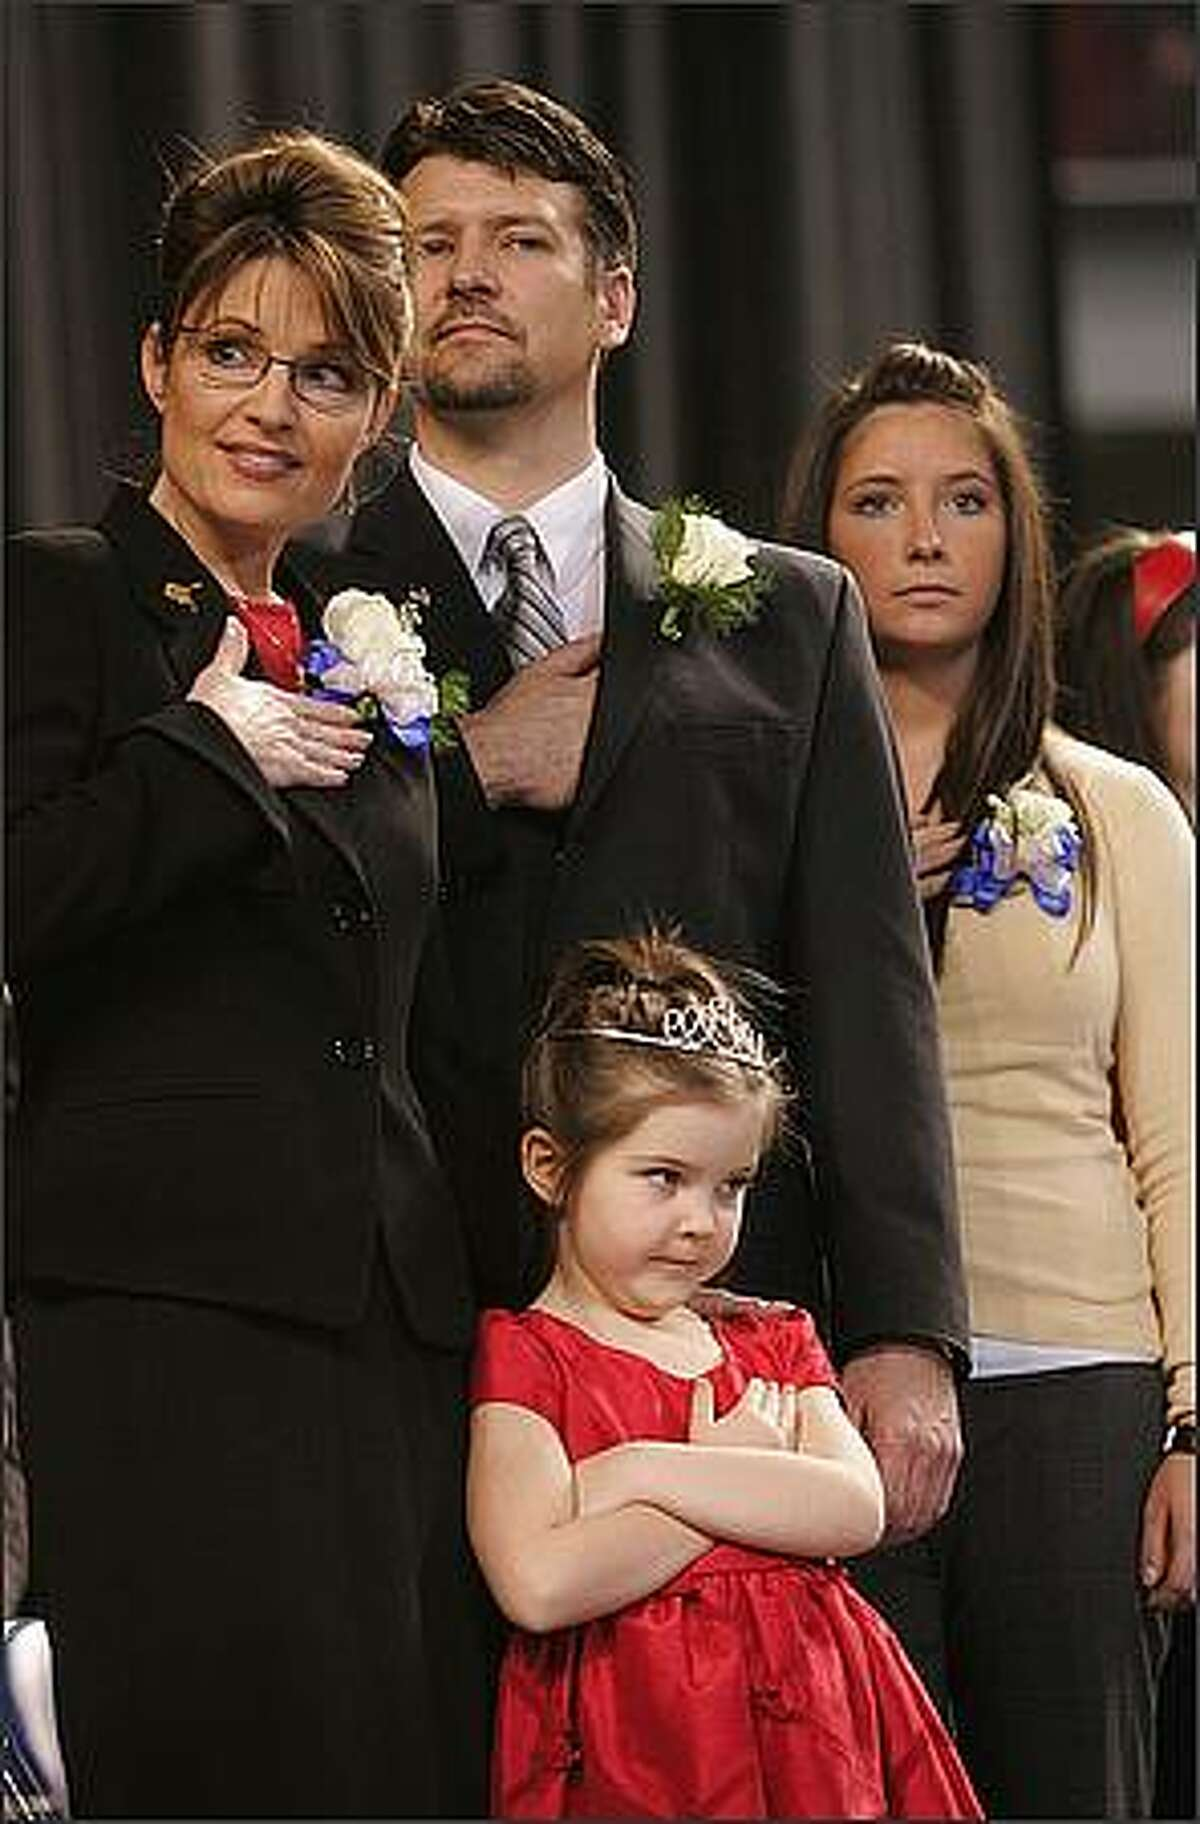 In this Dec. 4, 2006 file photo, Gov. Sarah Palin, left, her husband Todd, and daughters Bristol,16, right, and Piper, 5, front stand as the colors are retired at the end of an inauguration ceremony in Fairbanks, Alaska Palin, 42, is the first female and youngest governor of Alaska. AP Photo/Al Grillo